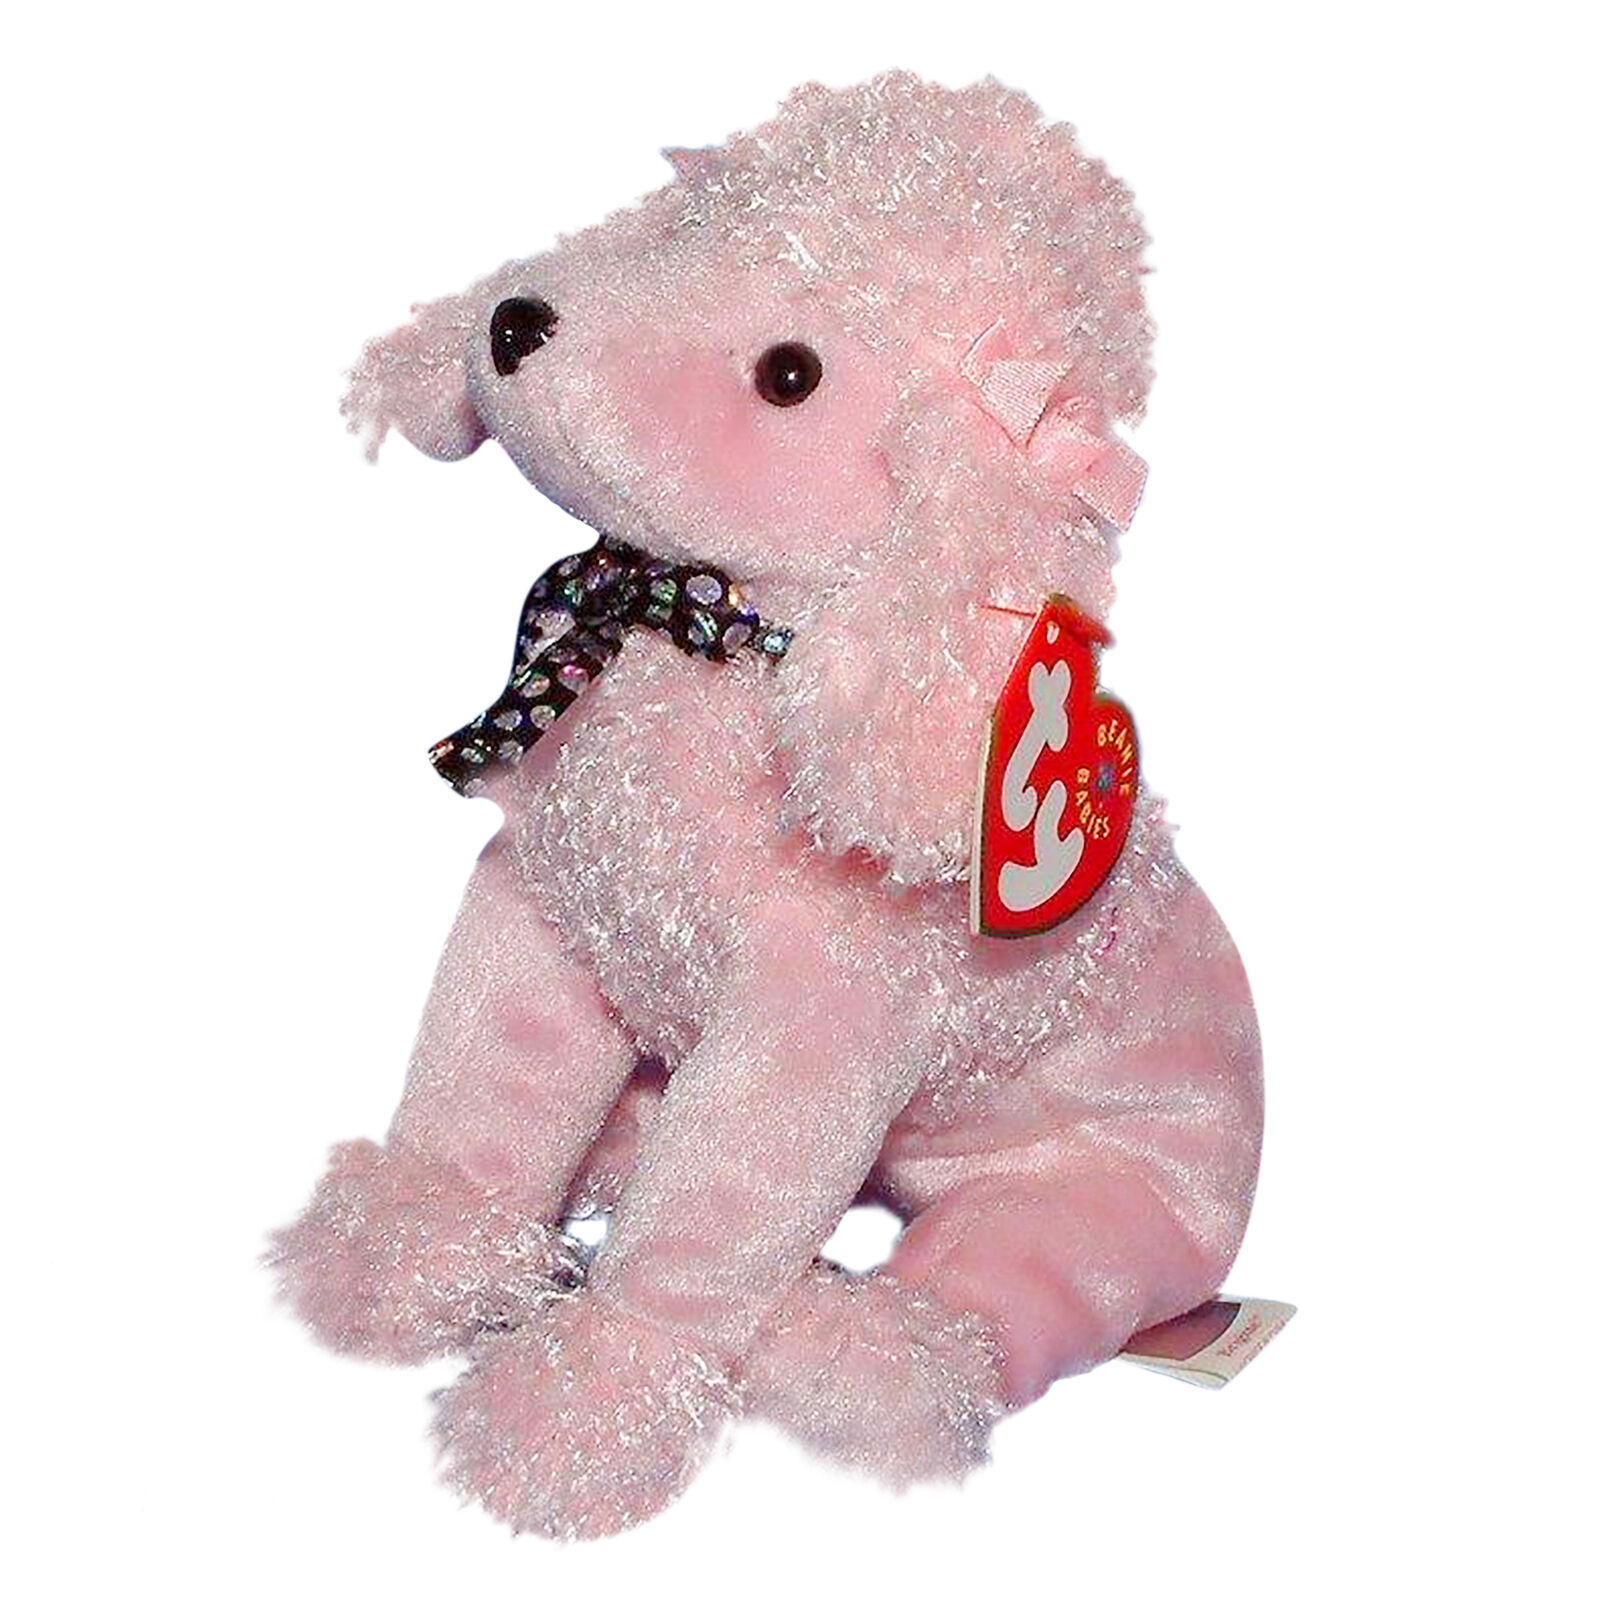 RARE 2001 Ty Pink Poodle Puppy Dog Plush Toy Brigitte Beanie Babies Baby  Collar for sale online  28cf9c9d7202